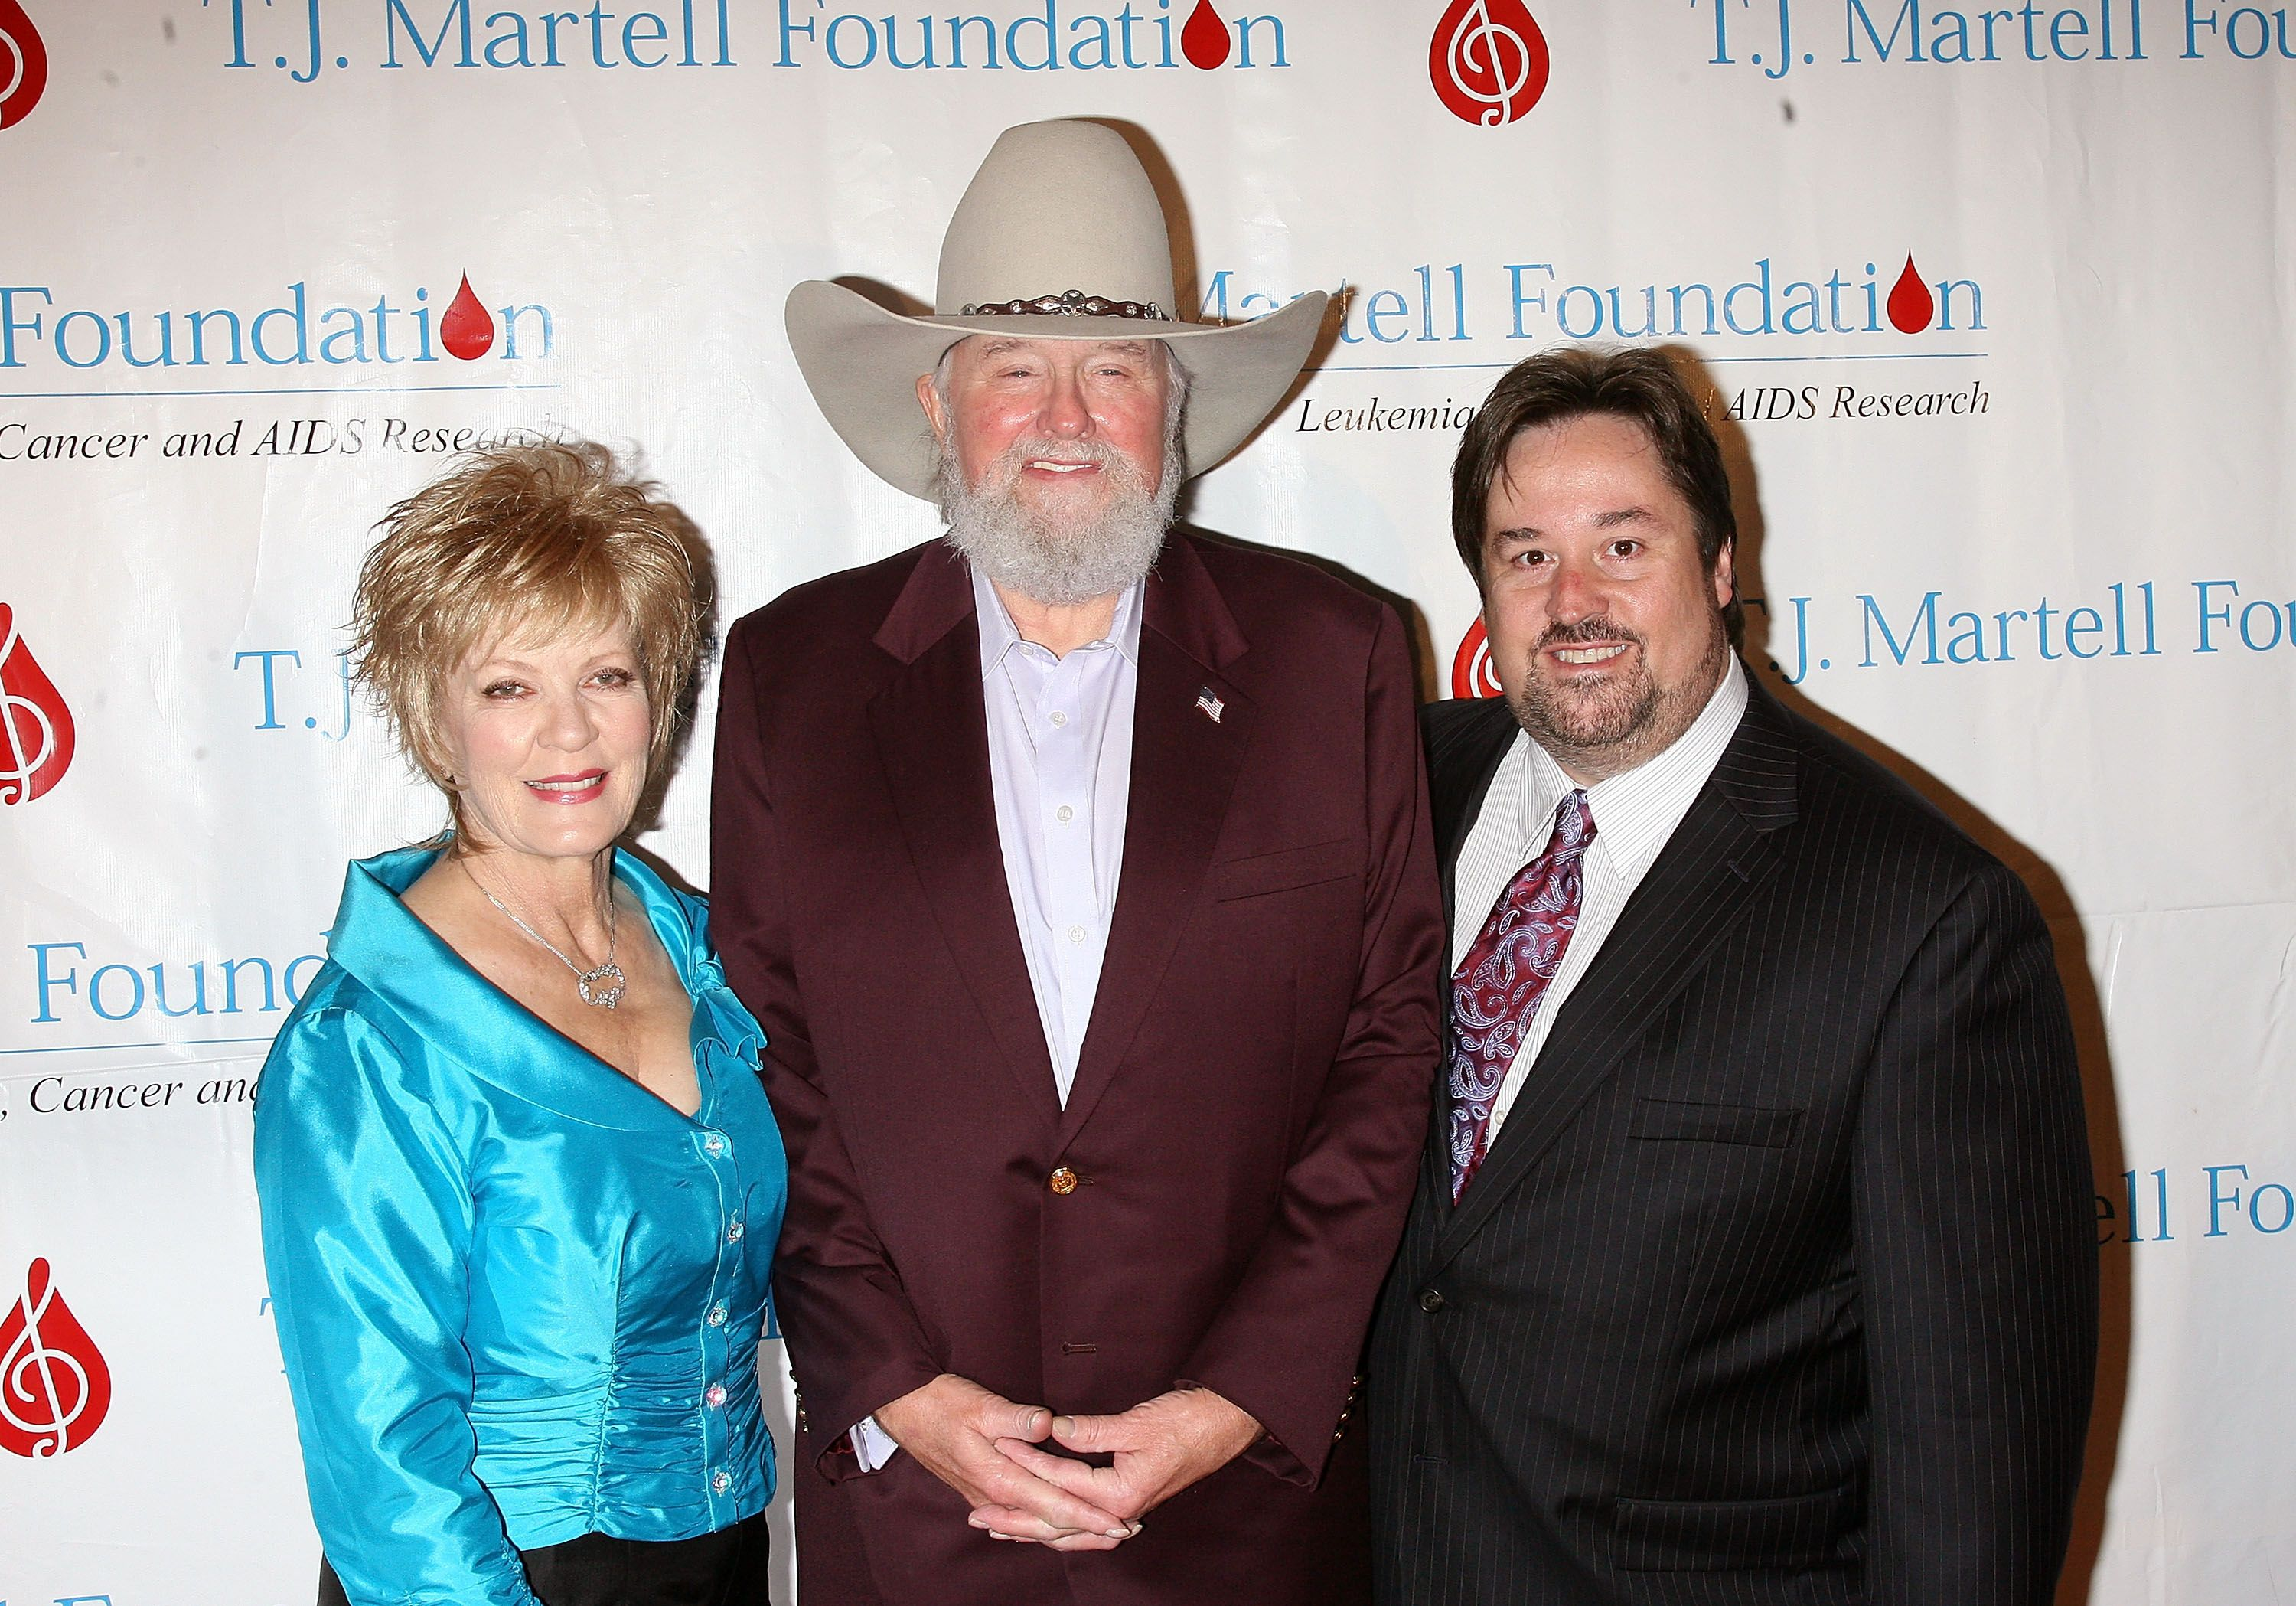 Charlie Daniels with son Charlie Daniels Jr. and wife Hazel at the T.J. Martell Foundation 35th Annual Awards Gala at Marriot Marquis on October 27, 2010 in New York City | Photo: Getty Images